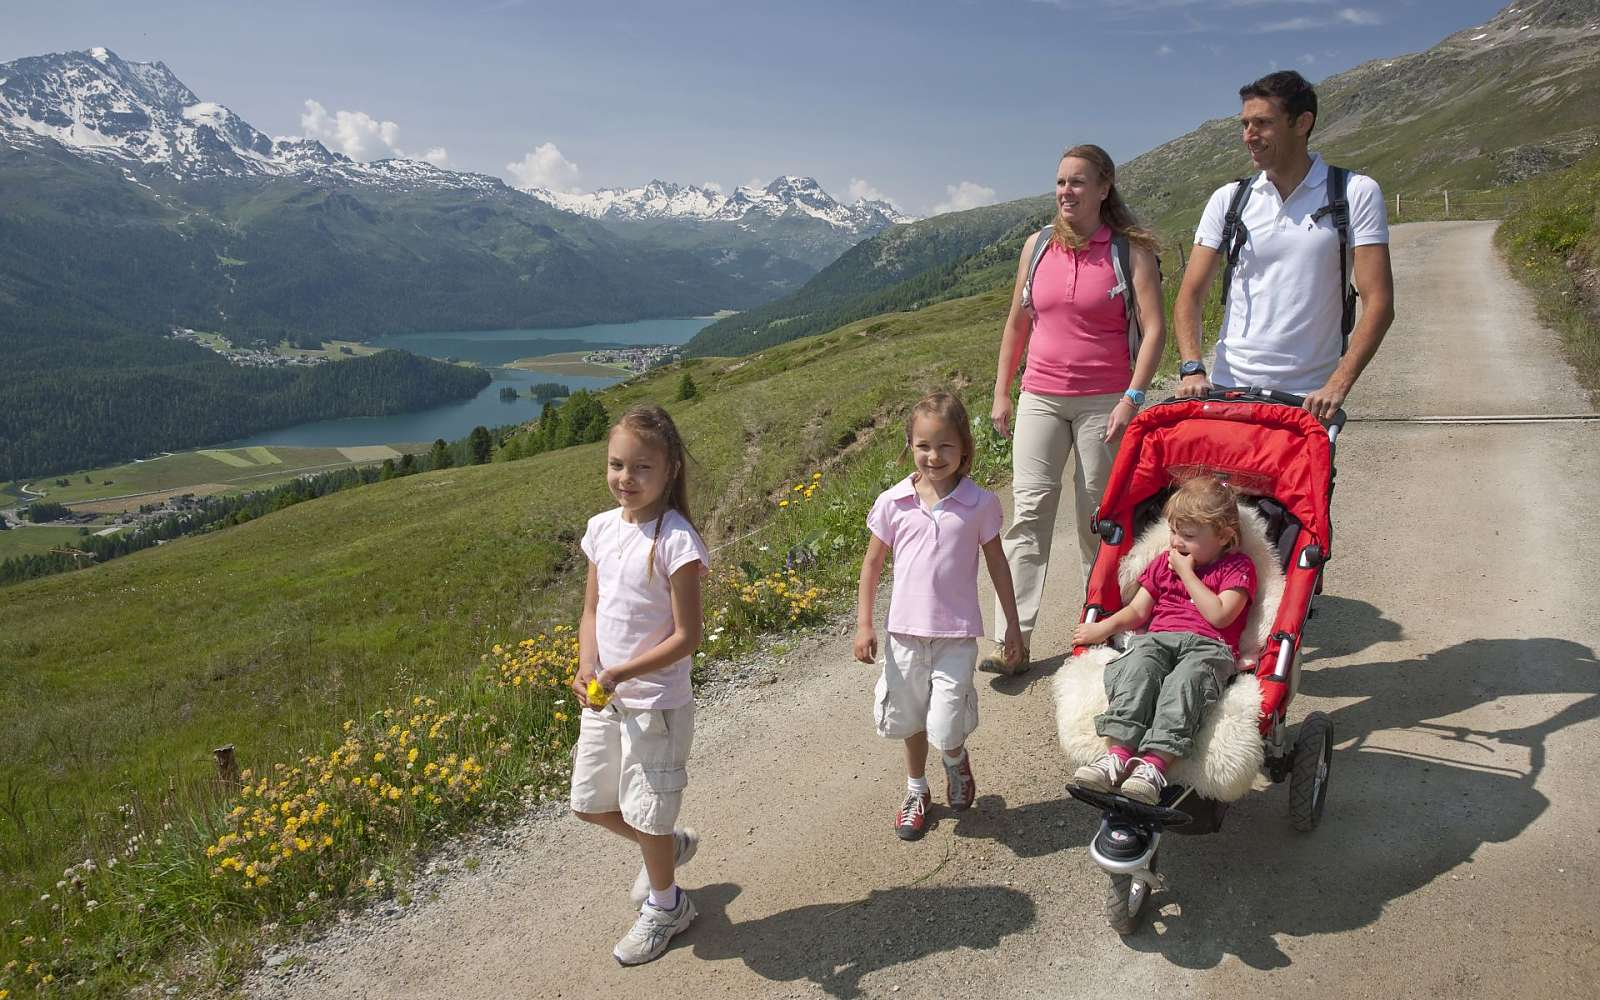 Active children's vacation in Switzerland